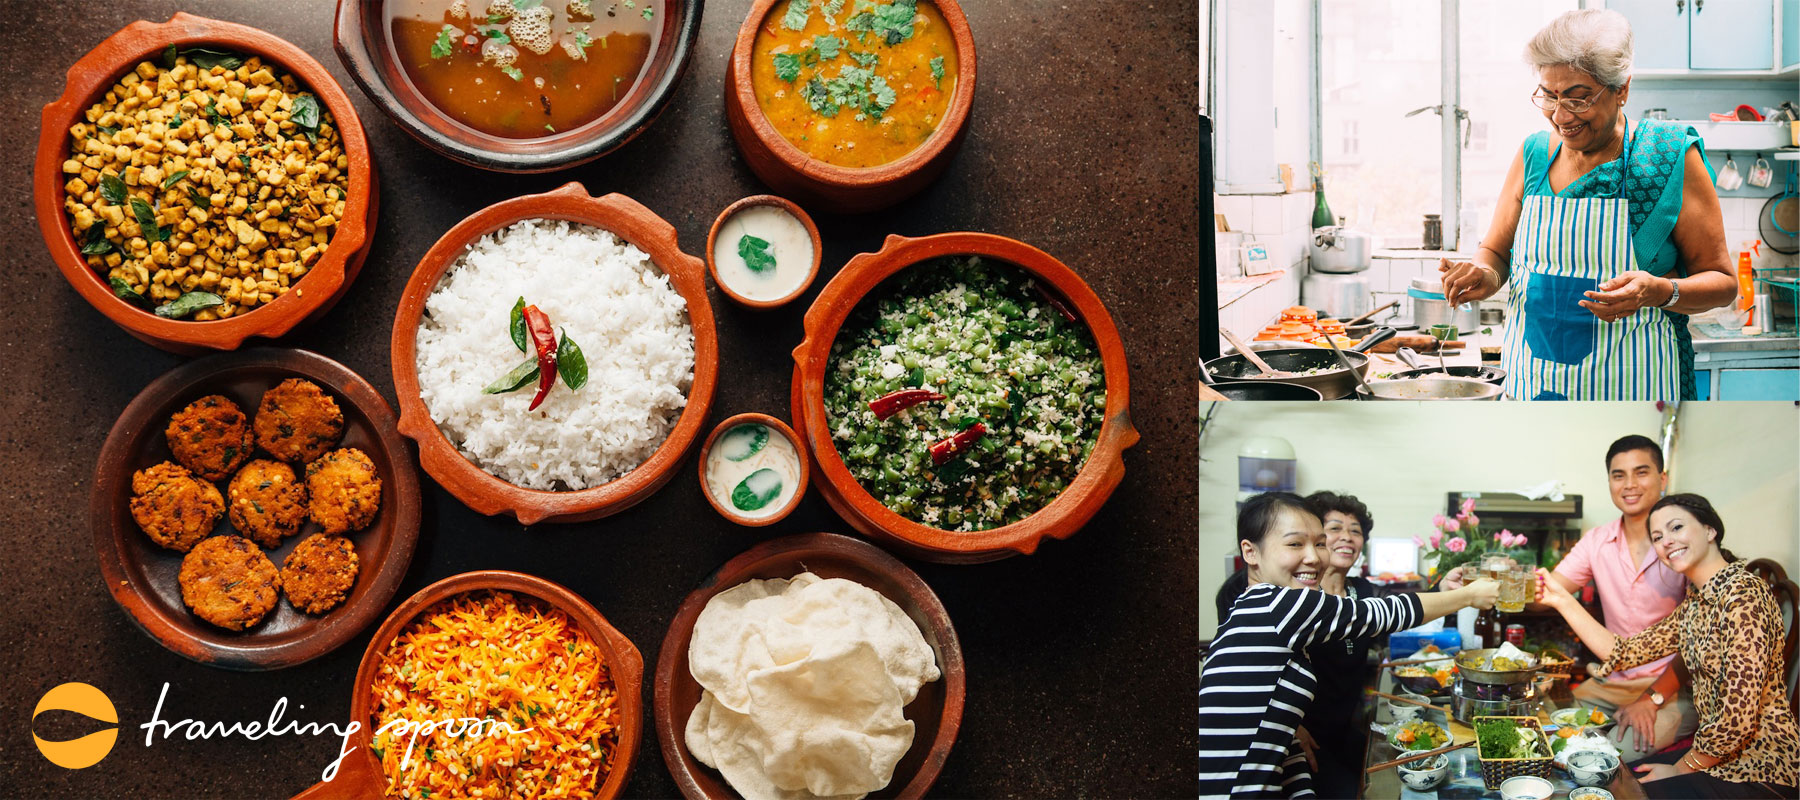 Eat with a local and get a real food experience for your travels. Source